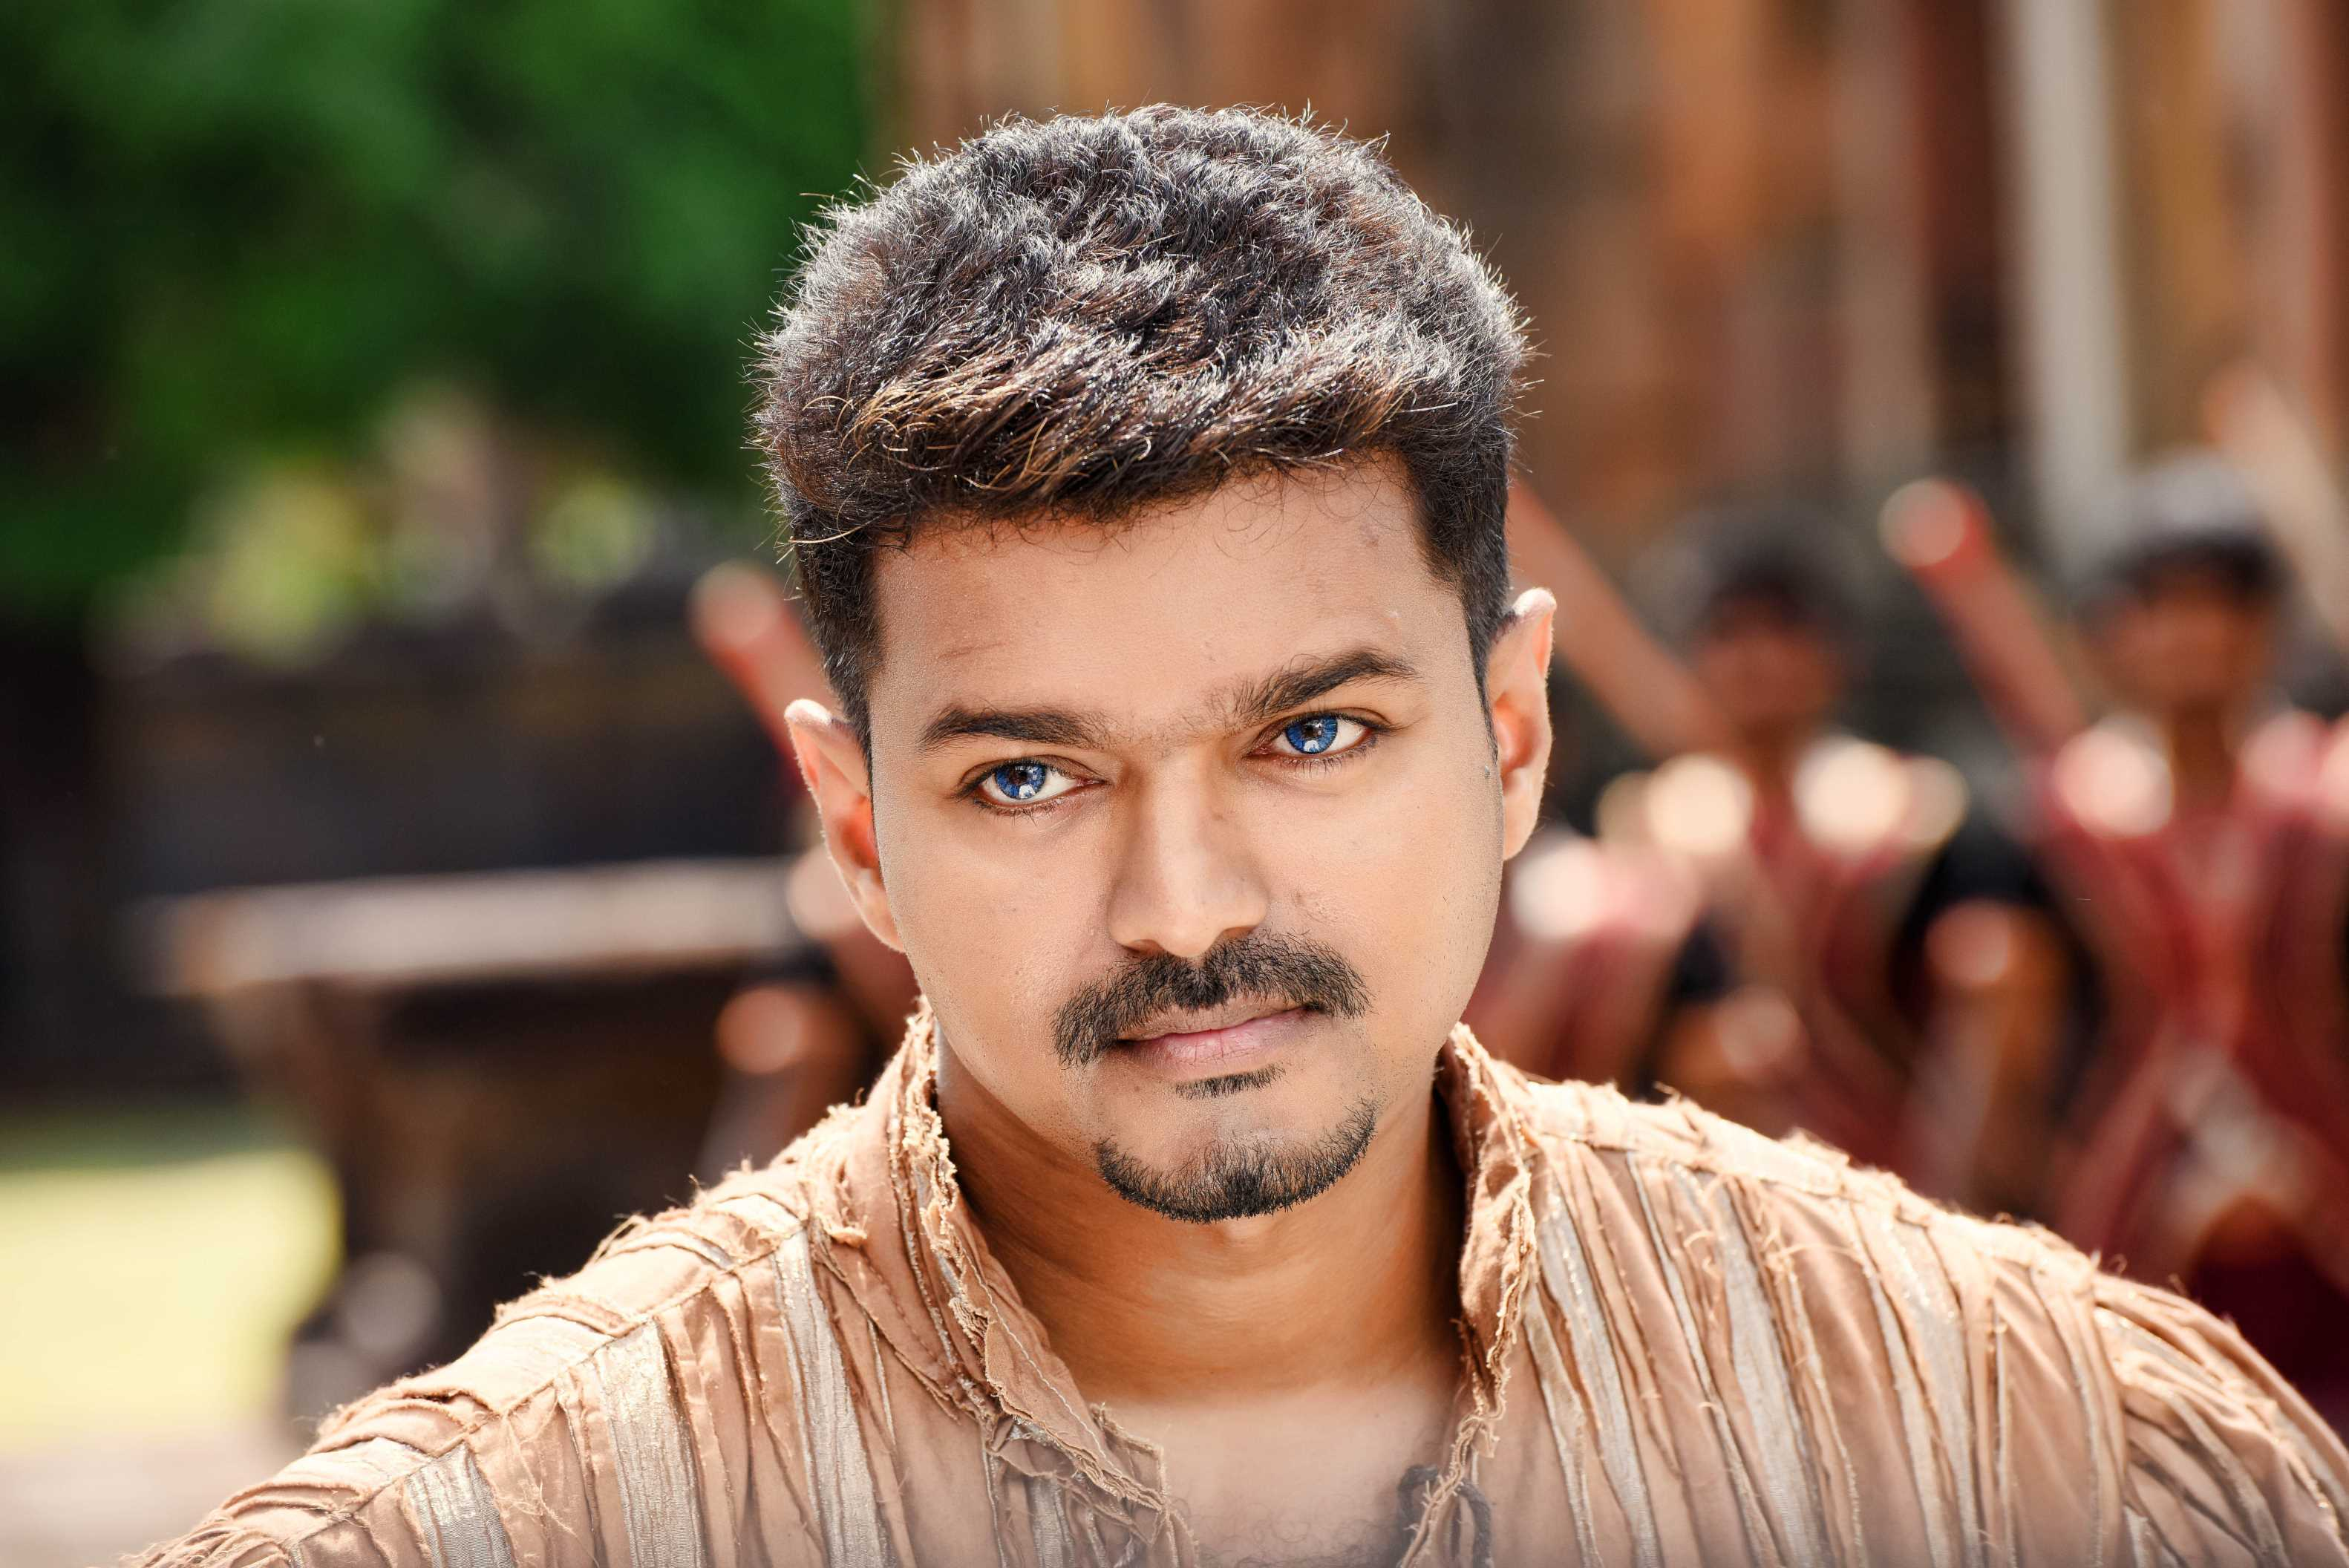 Actors Wallpapers Download: Vijay Wallpapers High Resolution And Quality Download